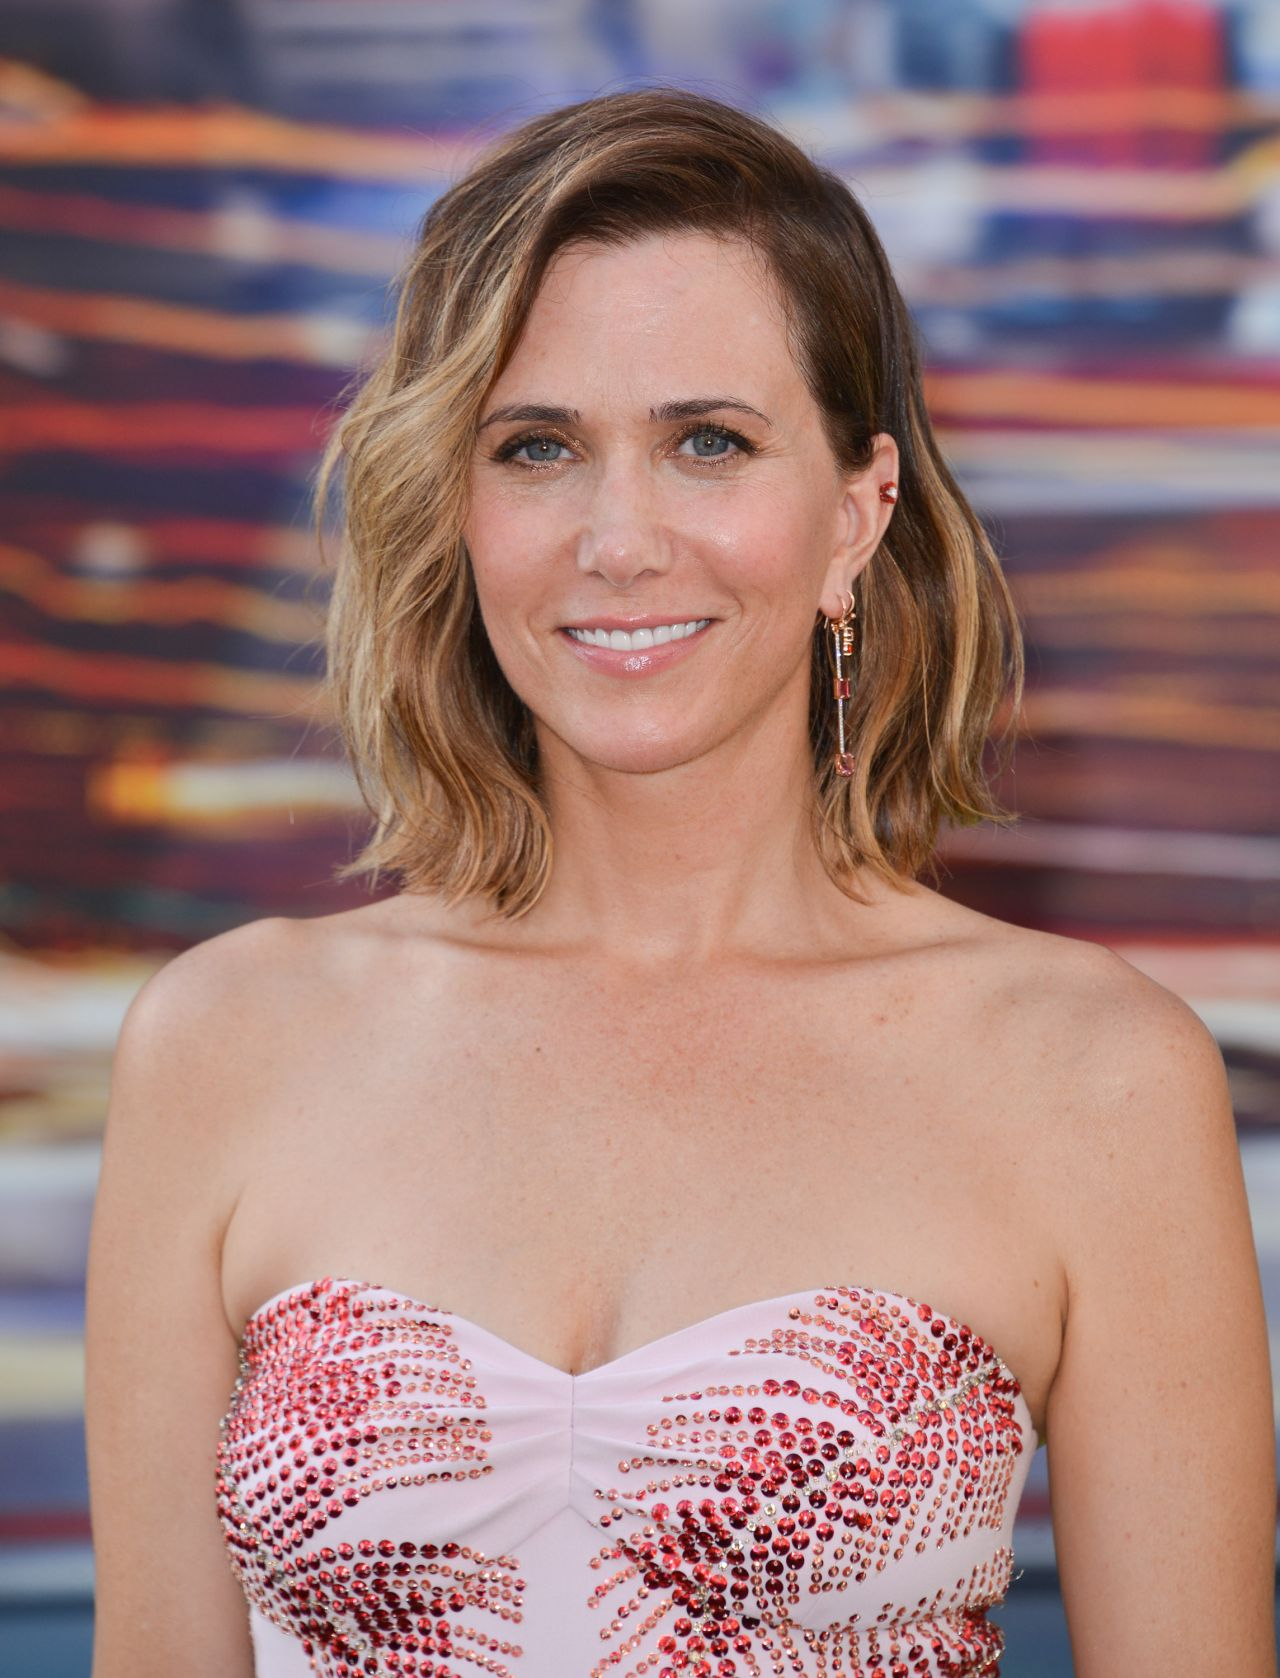 Kristen Wiig Sony Pictures Ghostbusters Premiere At Tcl Chinese Theatre In Hollywood